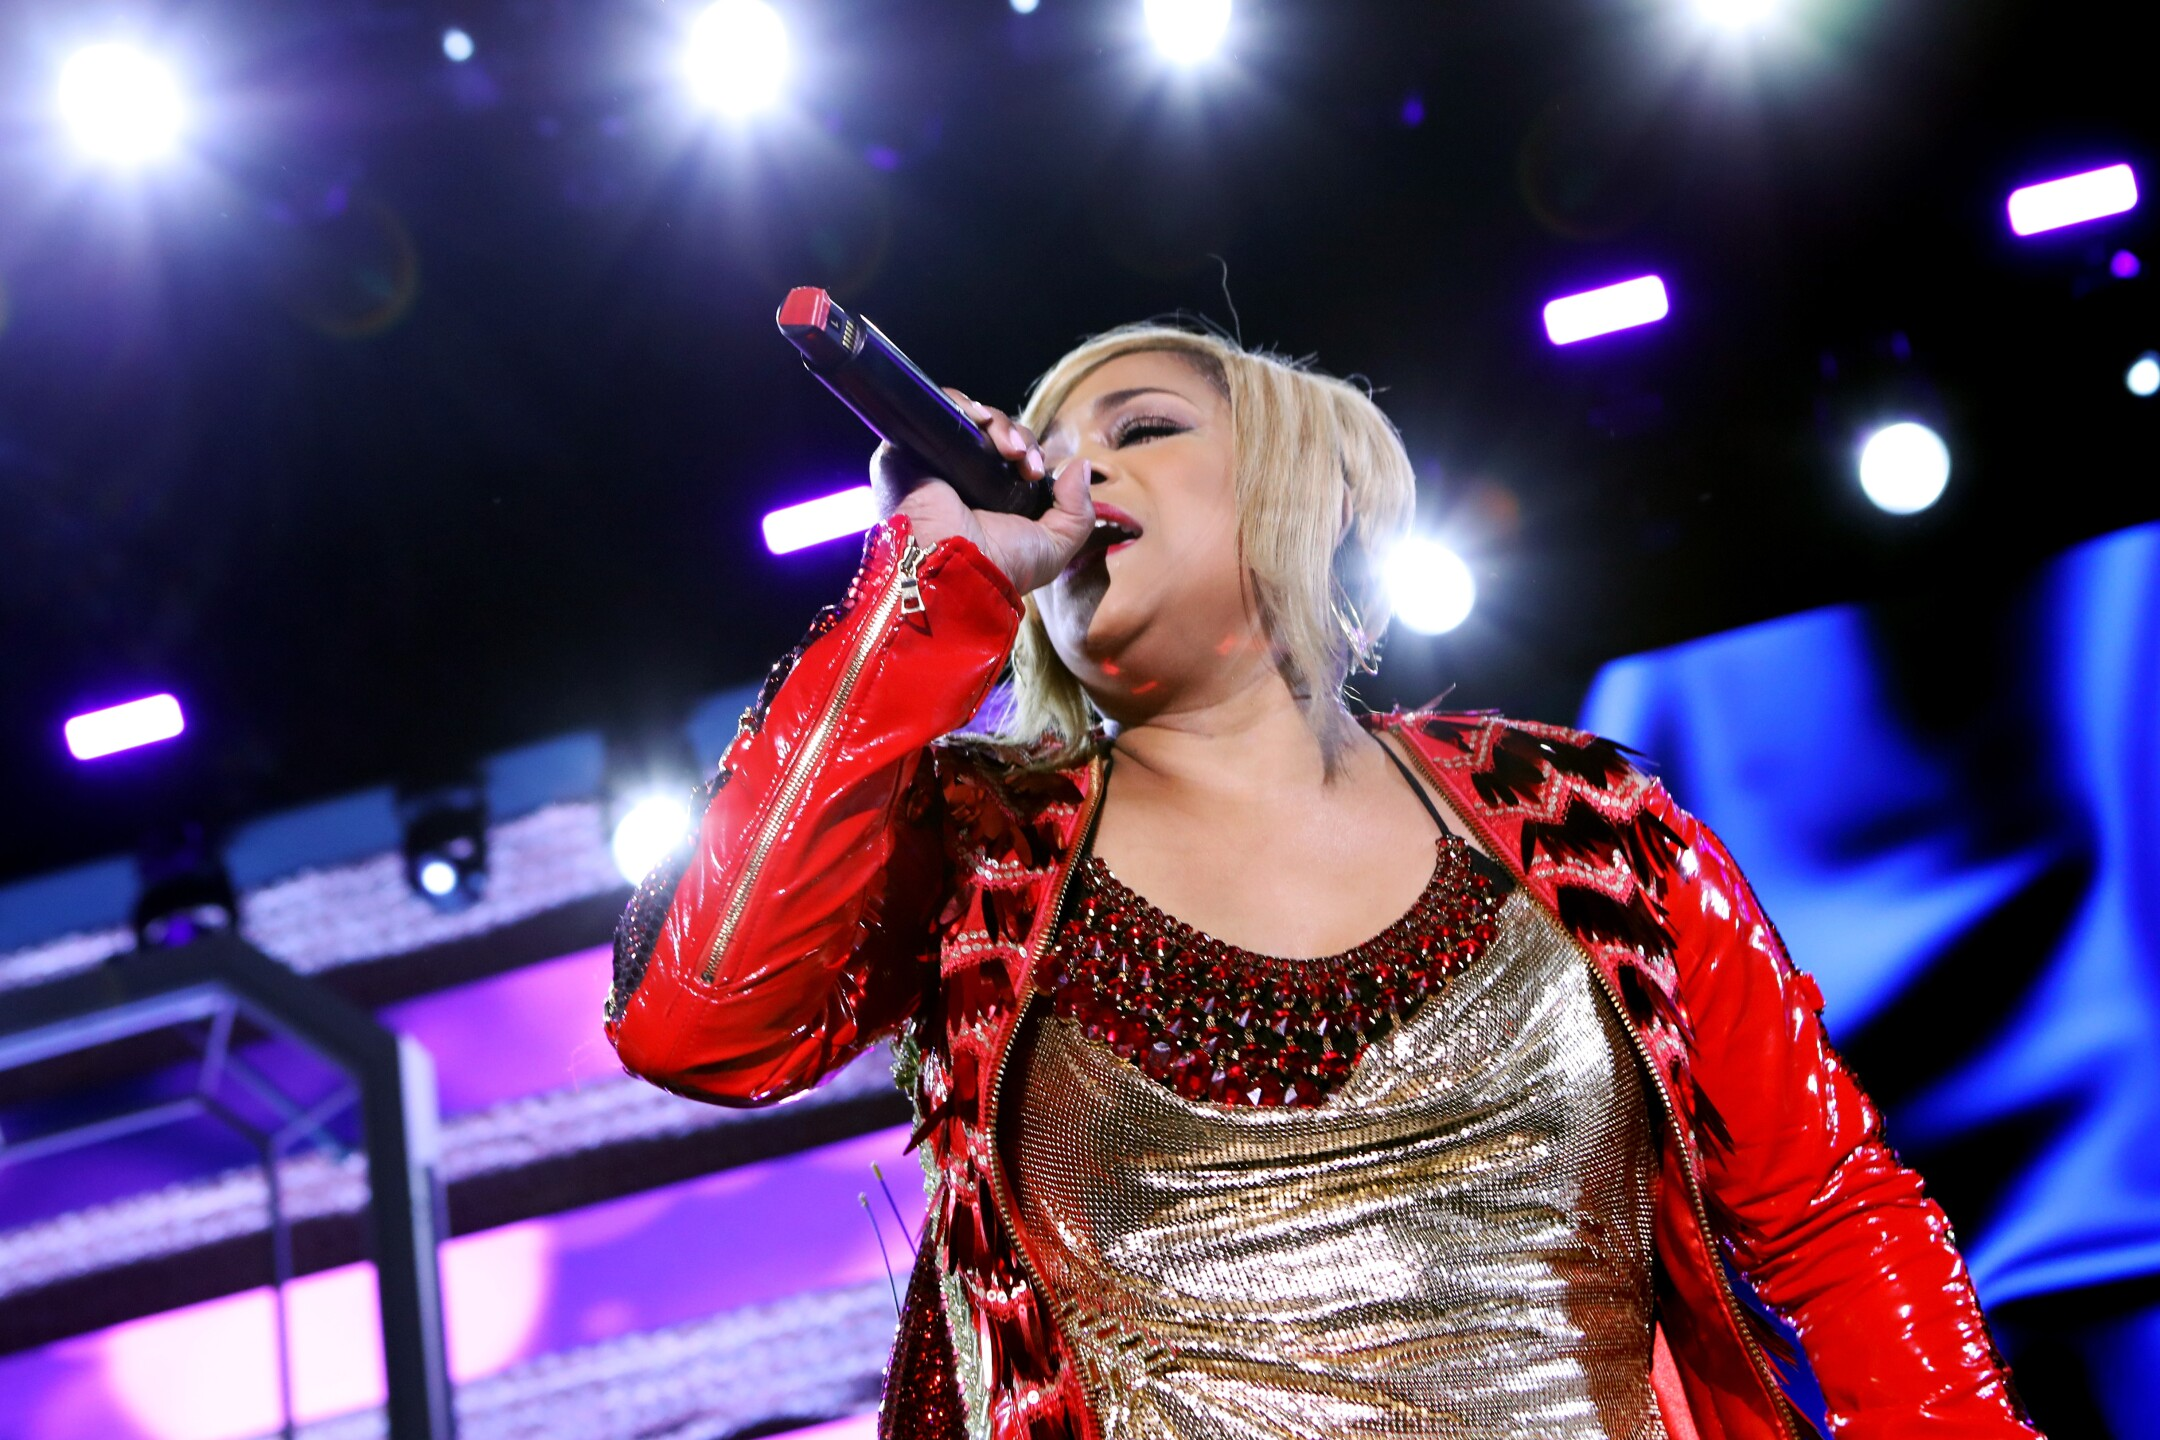 Tionne 'T-Boz' Watkins performs at 61st Annual GRAMMY Awards.